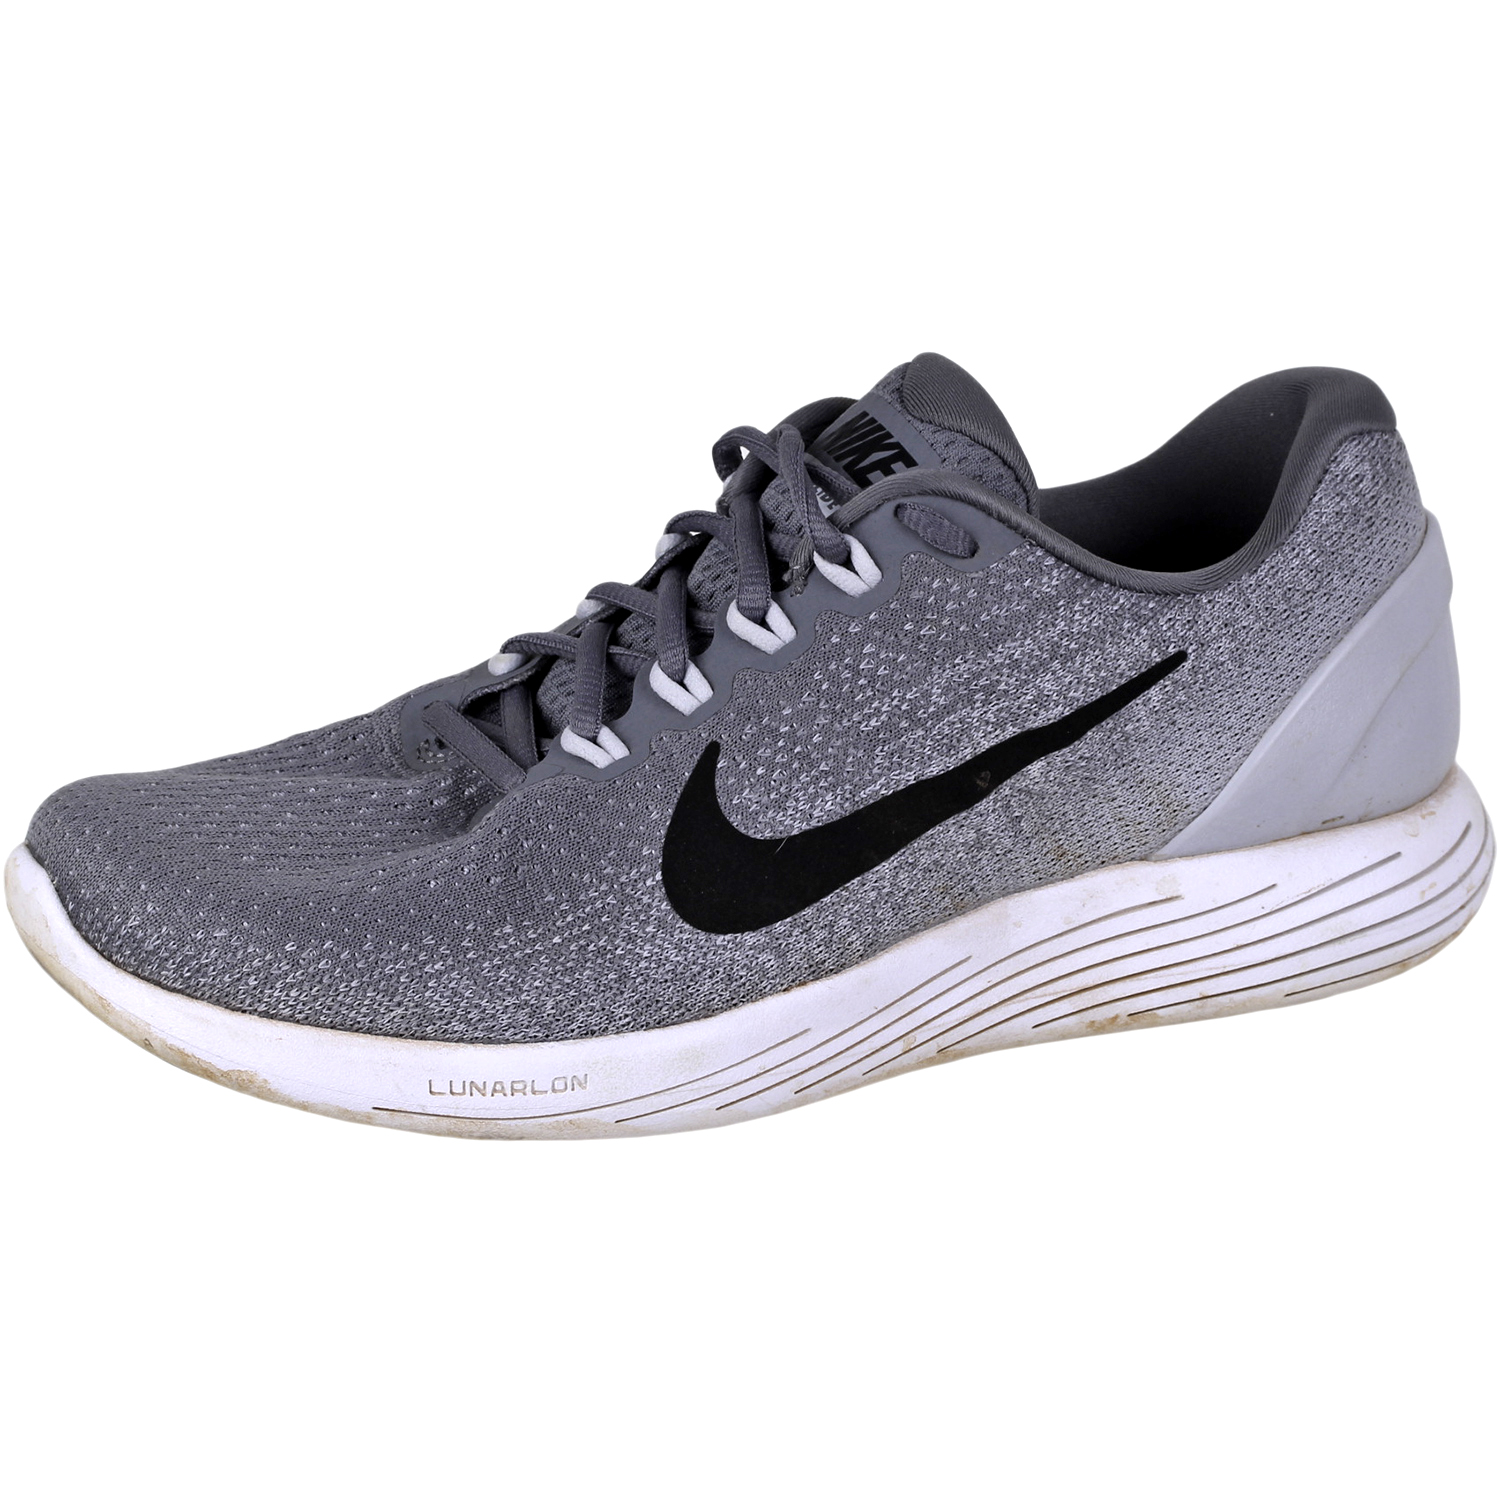 6e83dbff322 Details about Nike Men's Lunarglide 9 Running Shoes 904715 Cool Grey 10